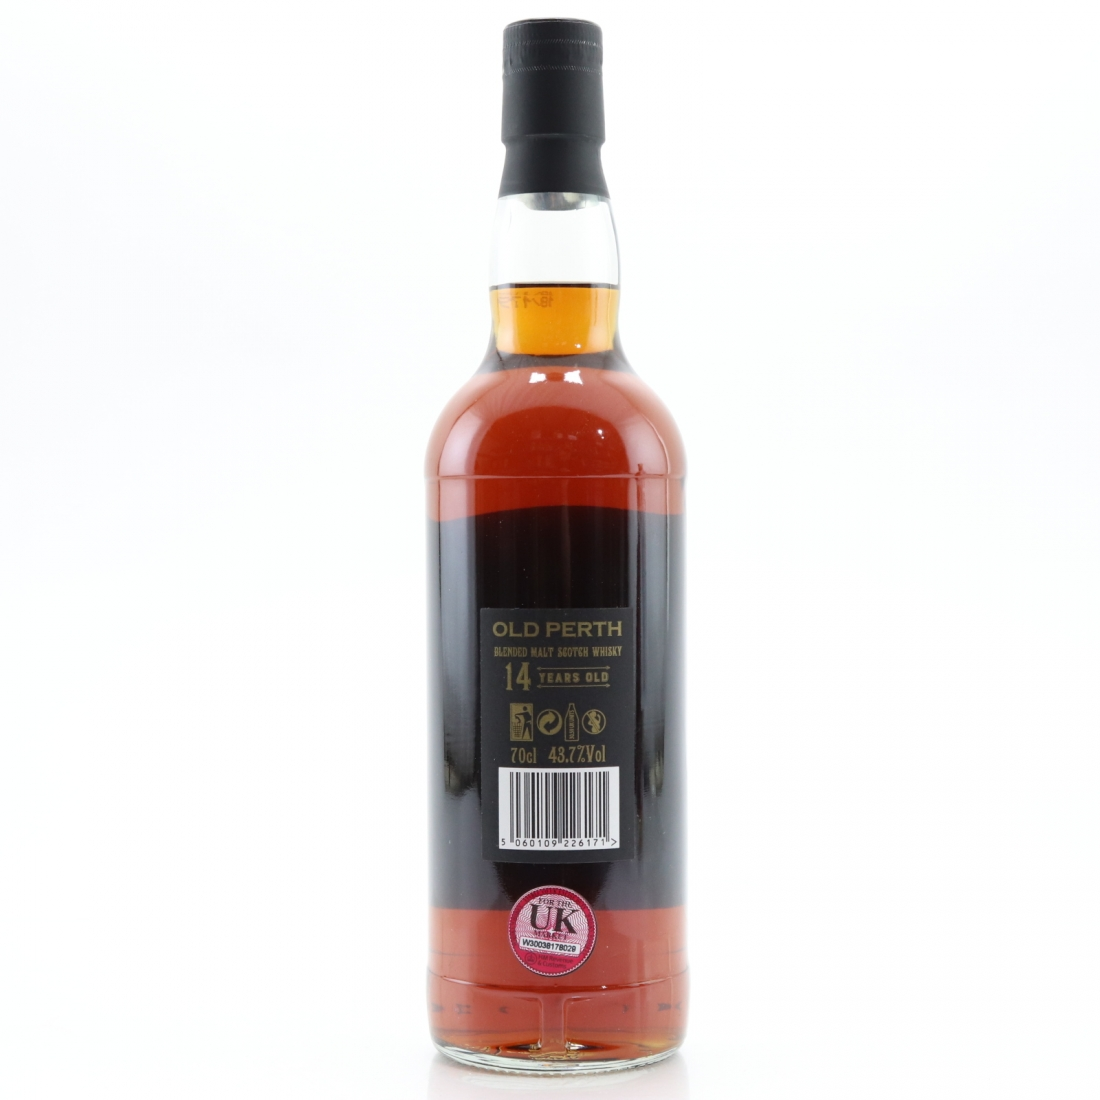 Old Perth 2004 14 Year Old Blended Malt No.3 / Macallan and Highland Park